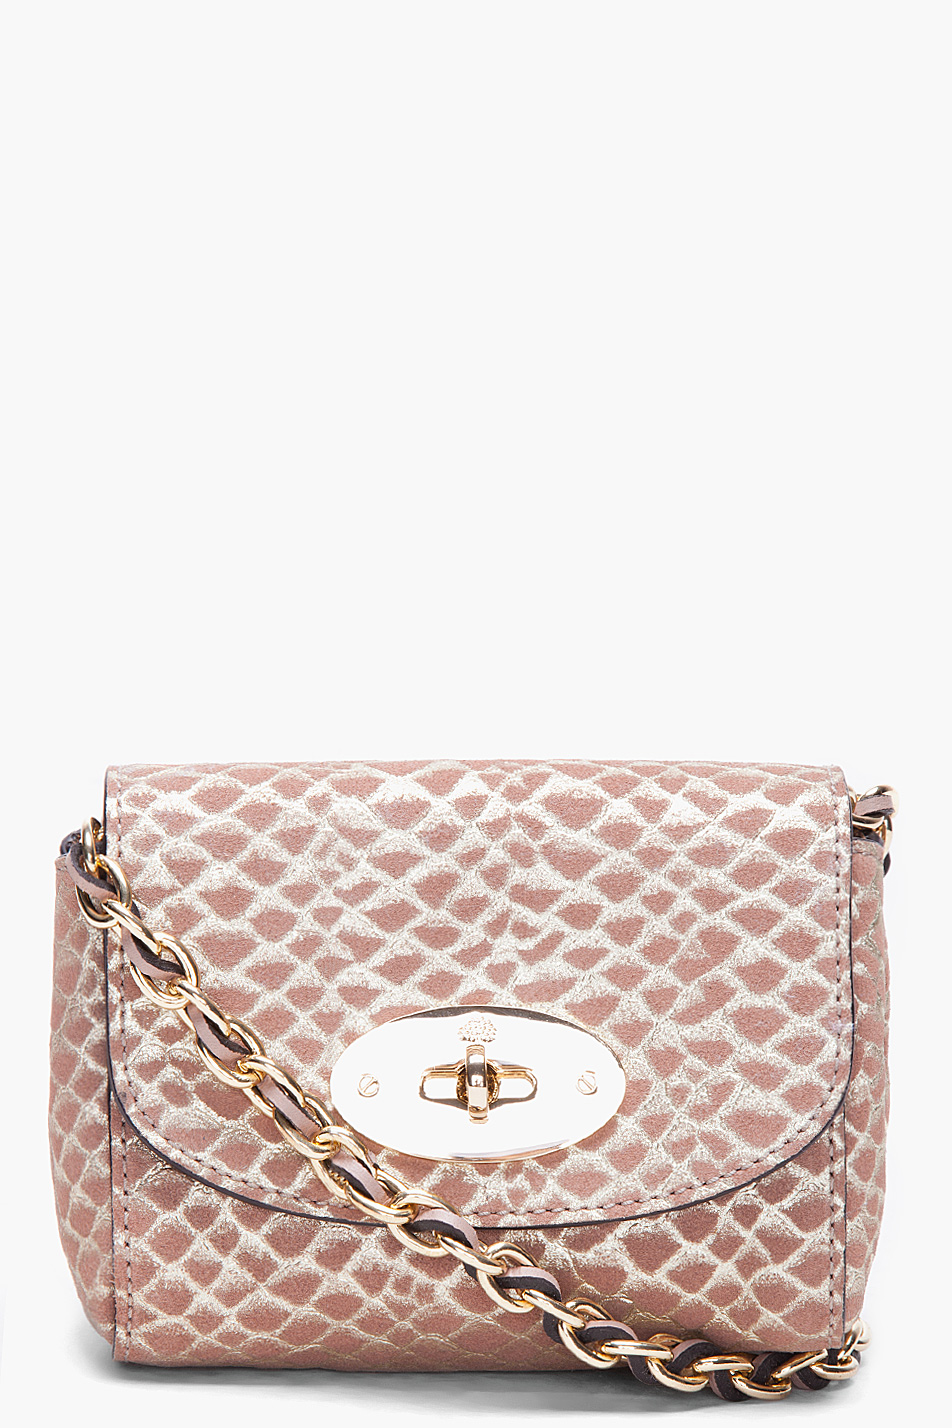 2138ec879bef ... official store lyst mulberry mini suede snake print lily bag in  metallic c2d8a 2d147